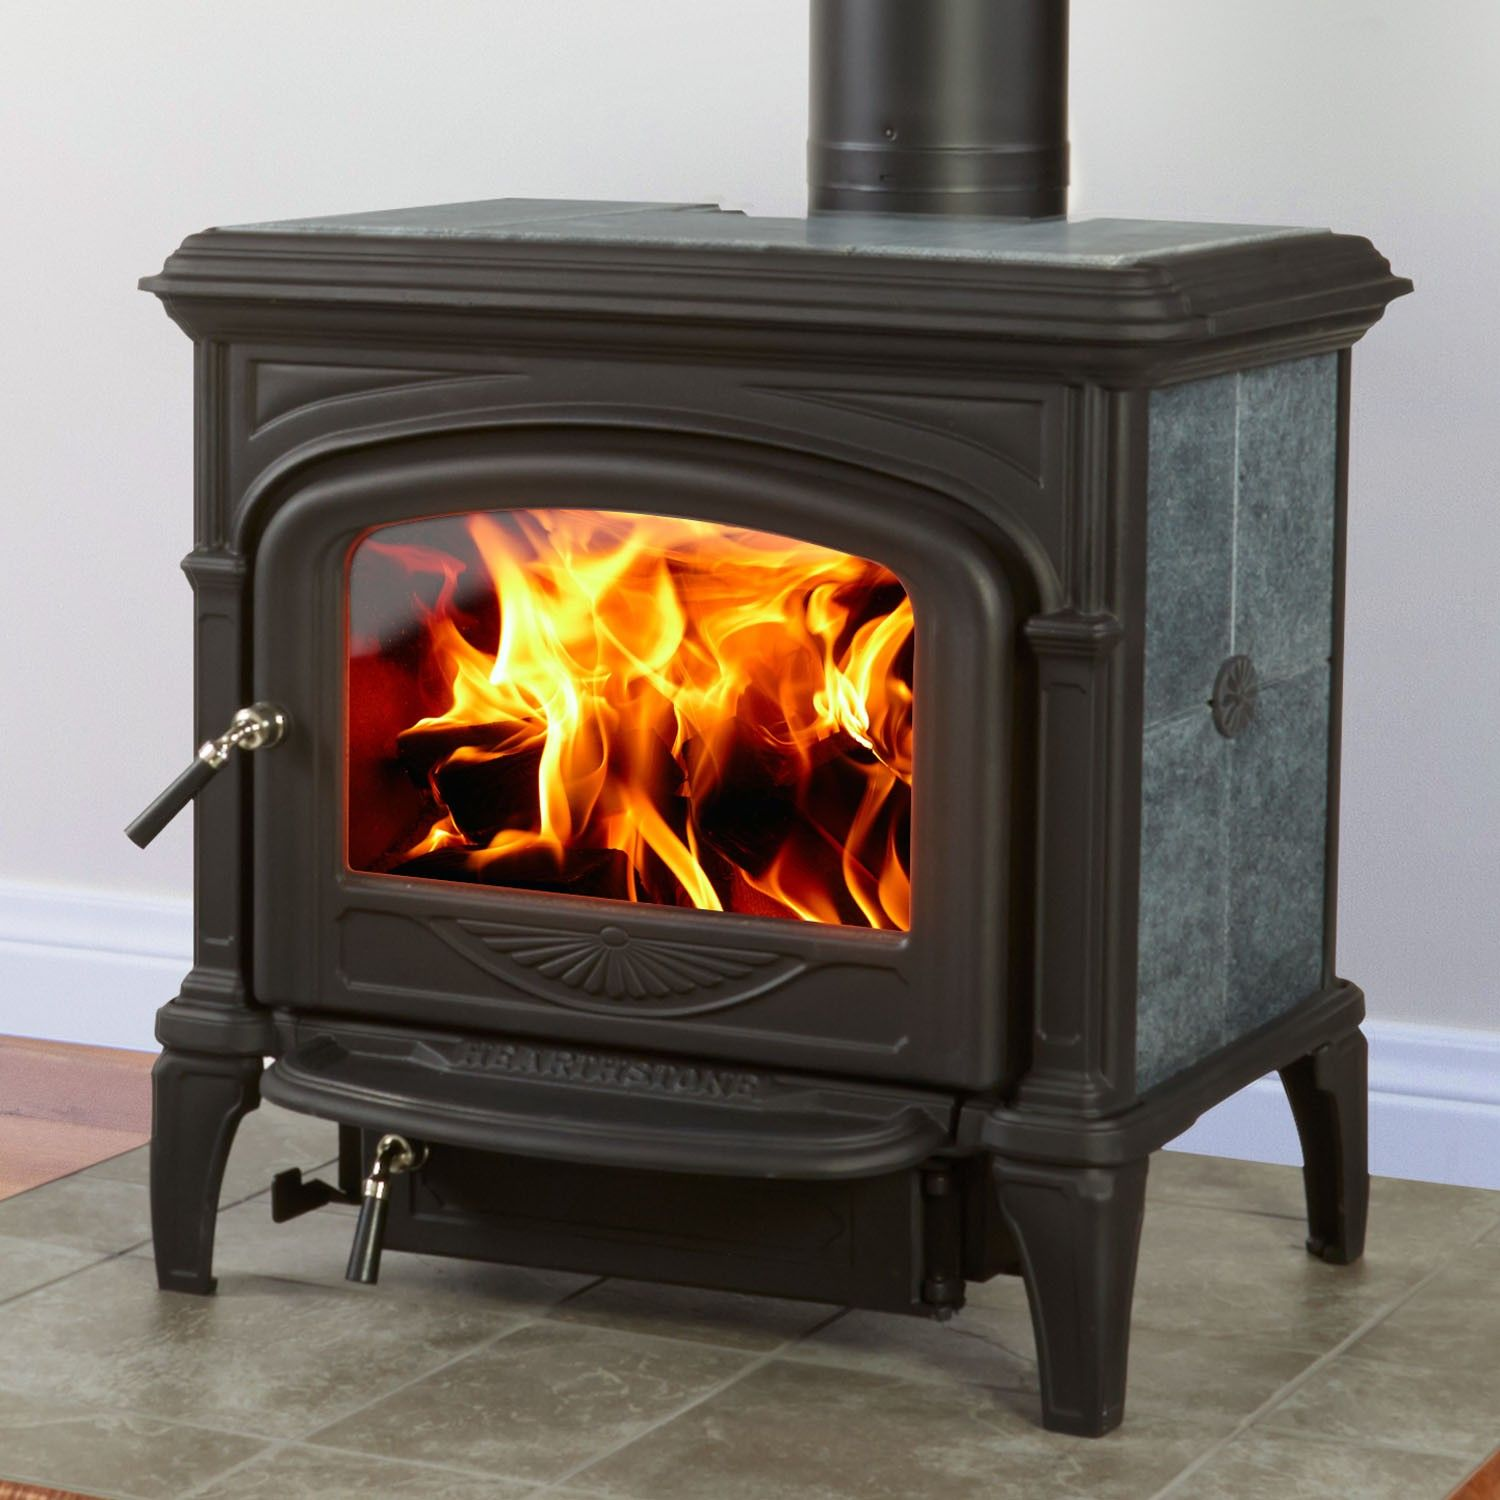 $2849 Hearthstone Soapstone Phoenix 8612, heats up to 2,000 sq ft ...